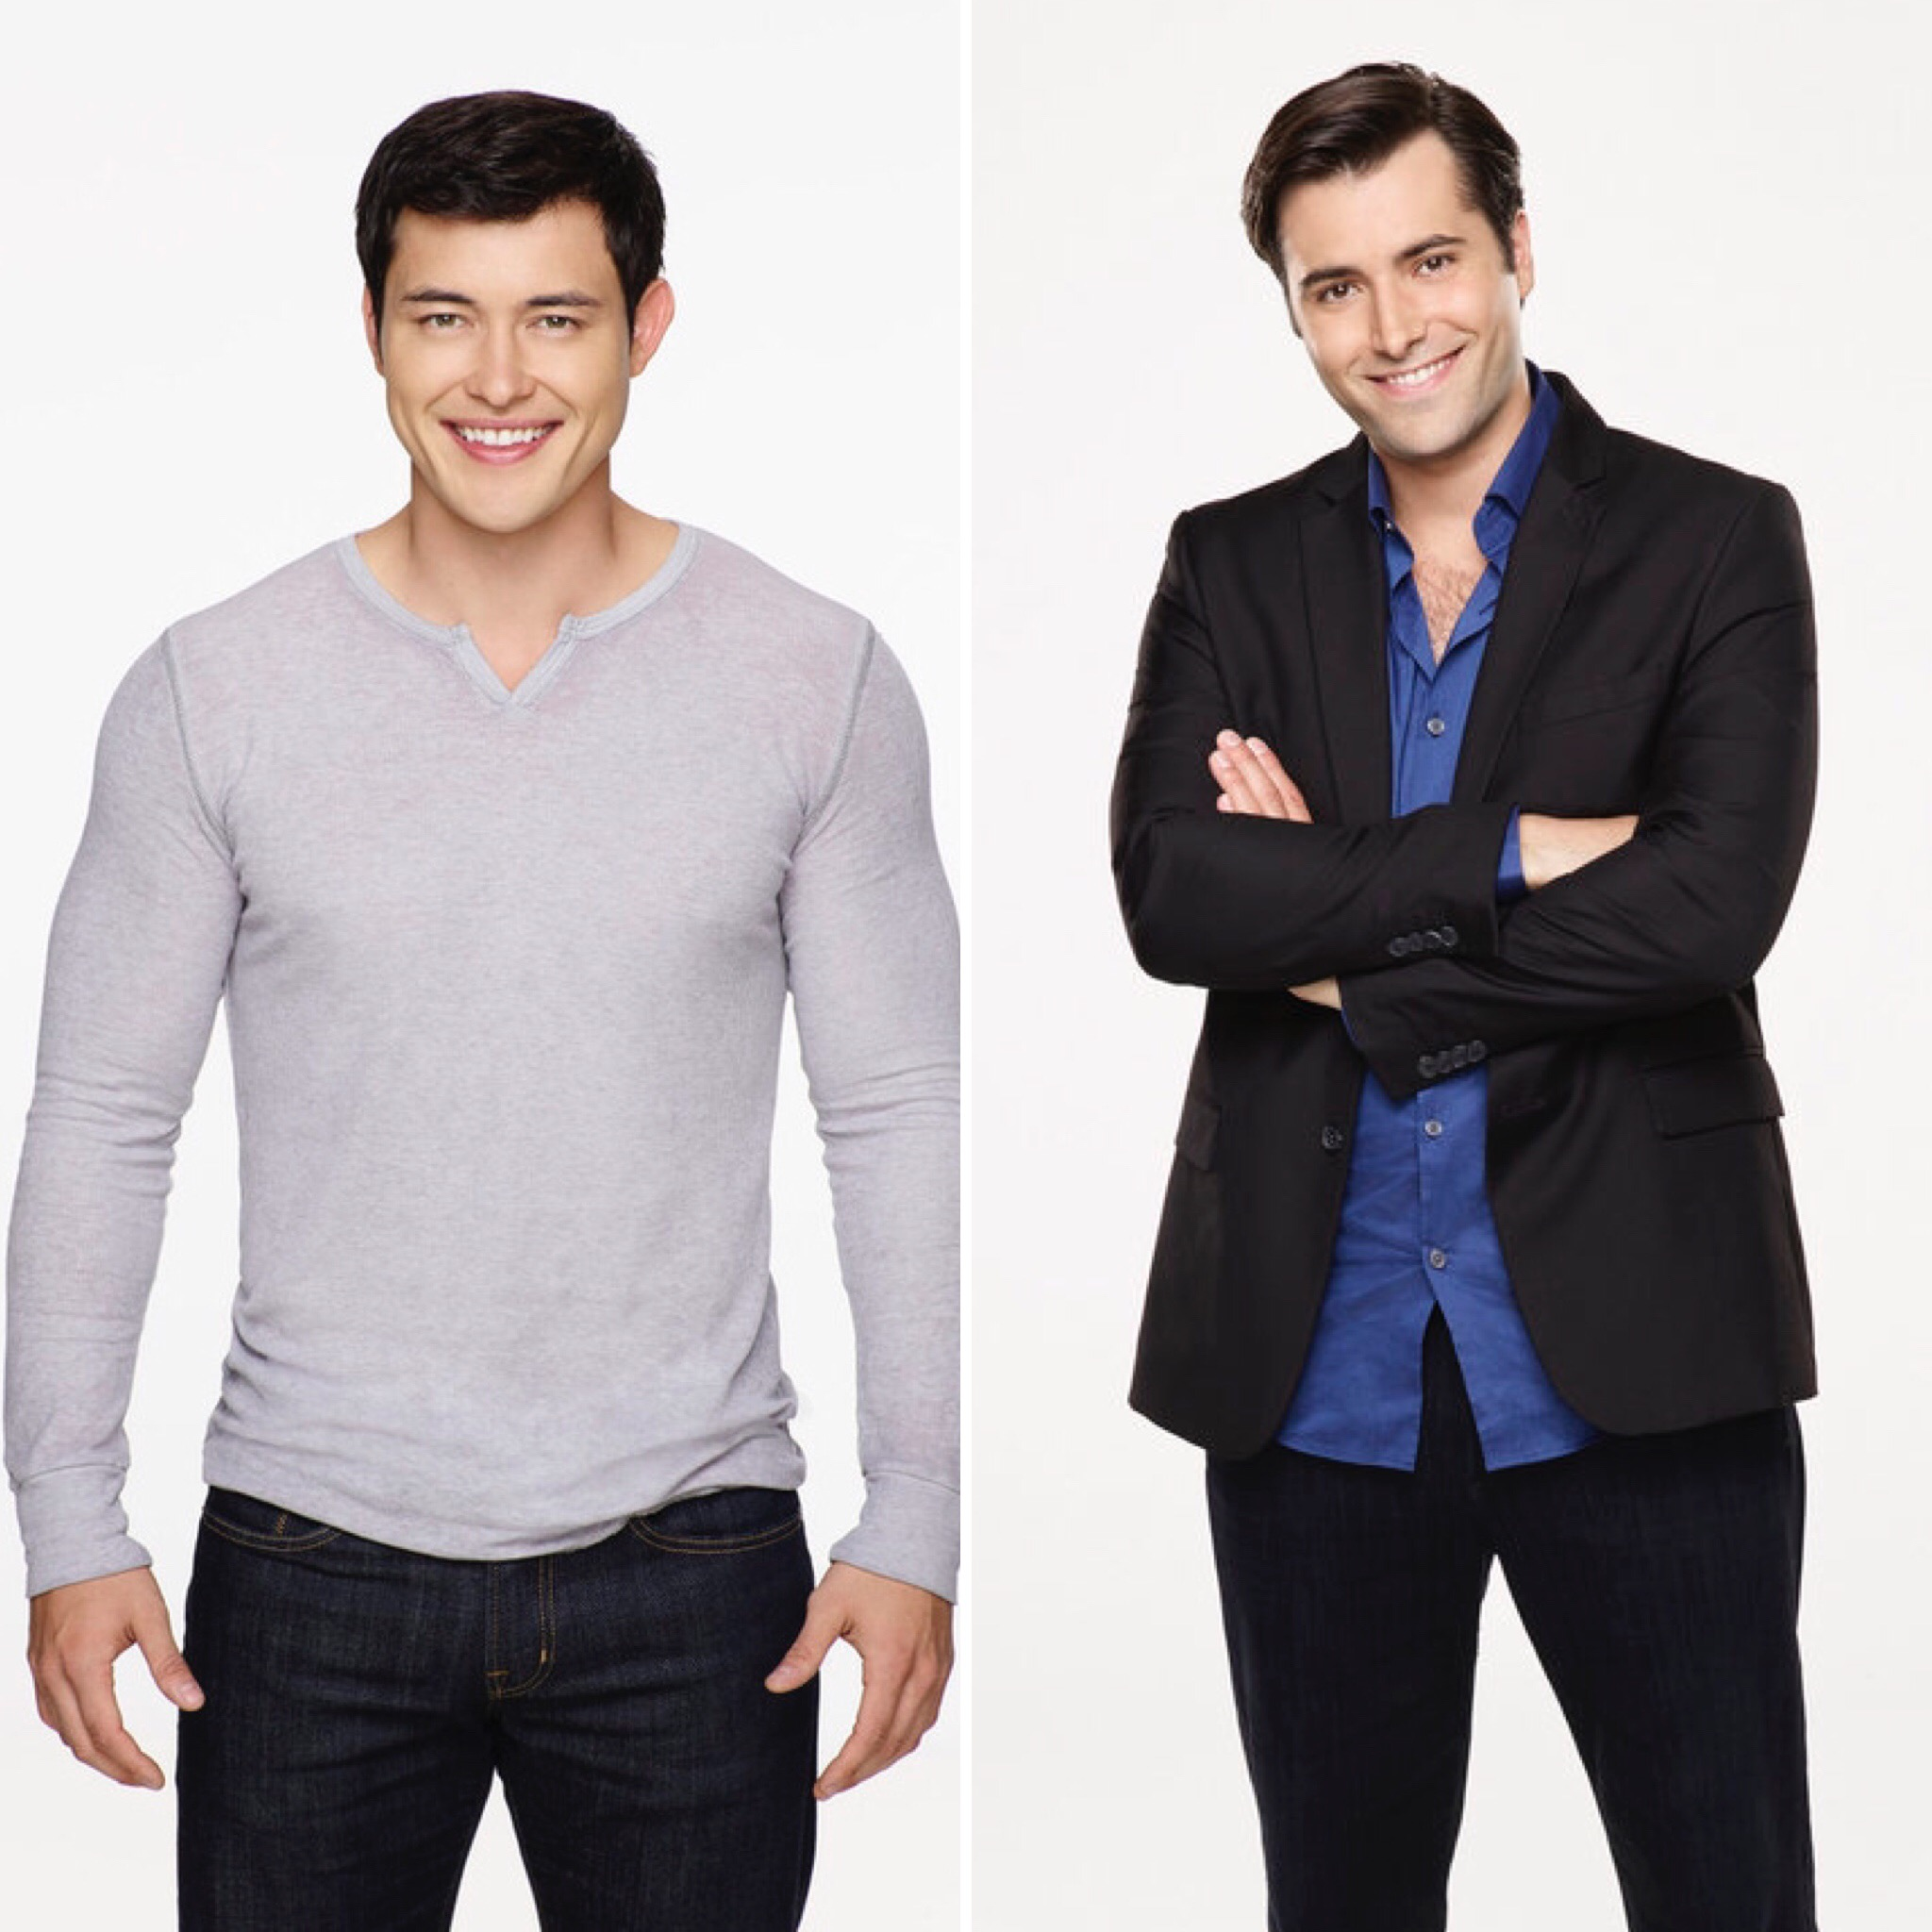 Soap Notes: Days of Our Lives' Freddie Smith and Christopher Sean on the Double Wedding